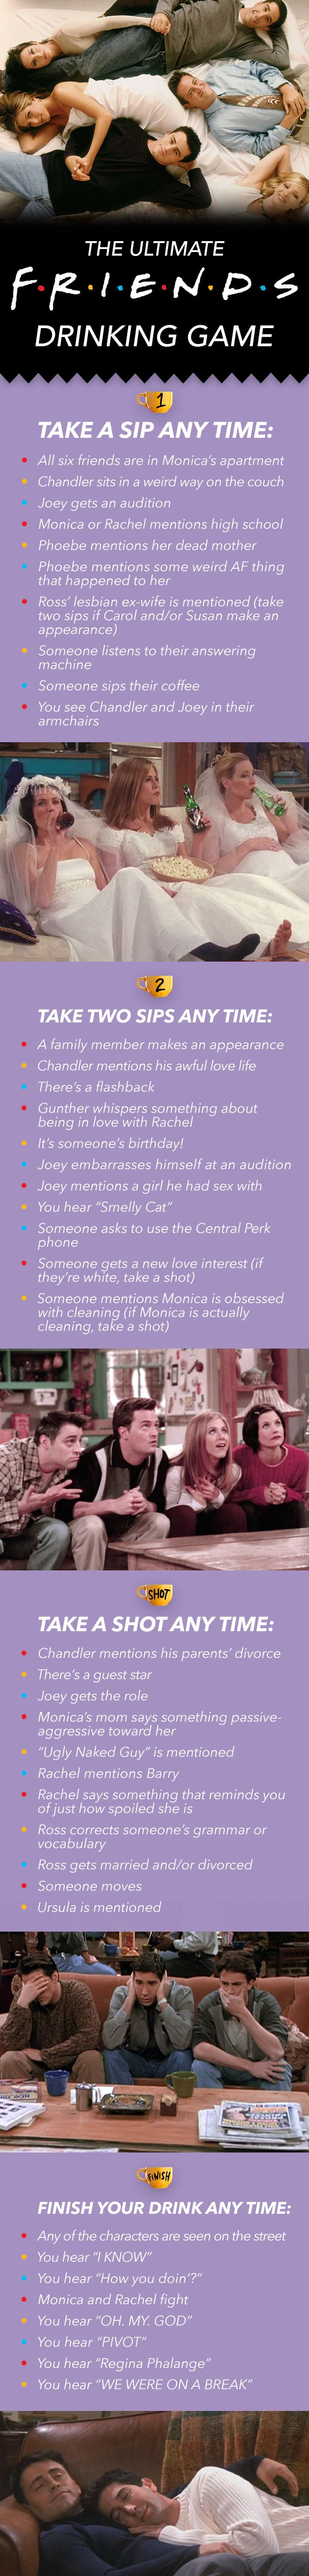 "The Ultimate ""Friends"" Drinking Game. This needs to be pinned on my wall."